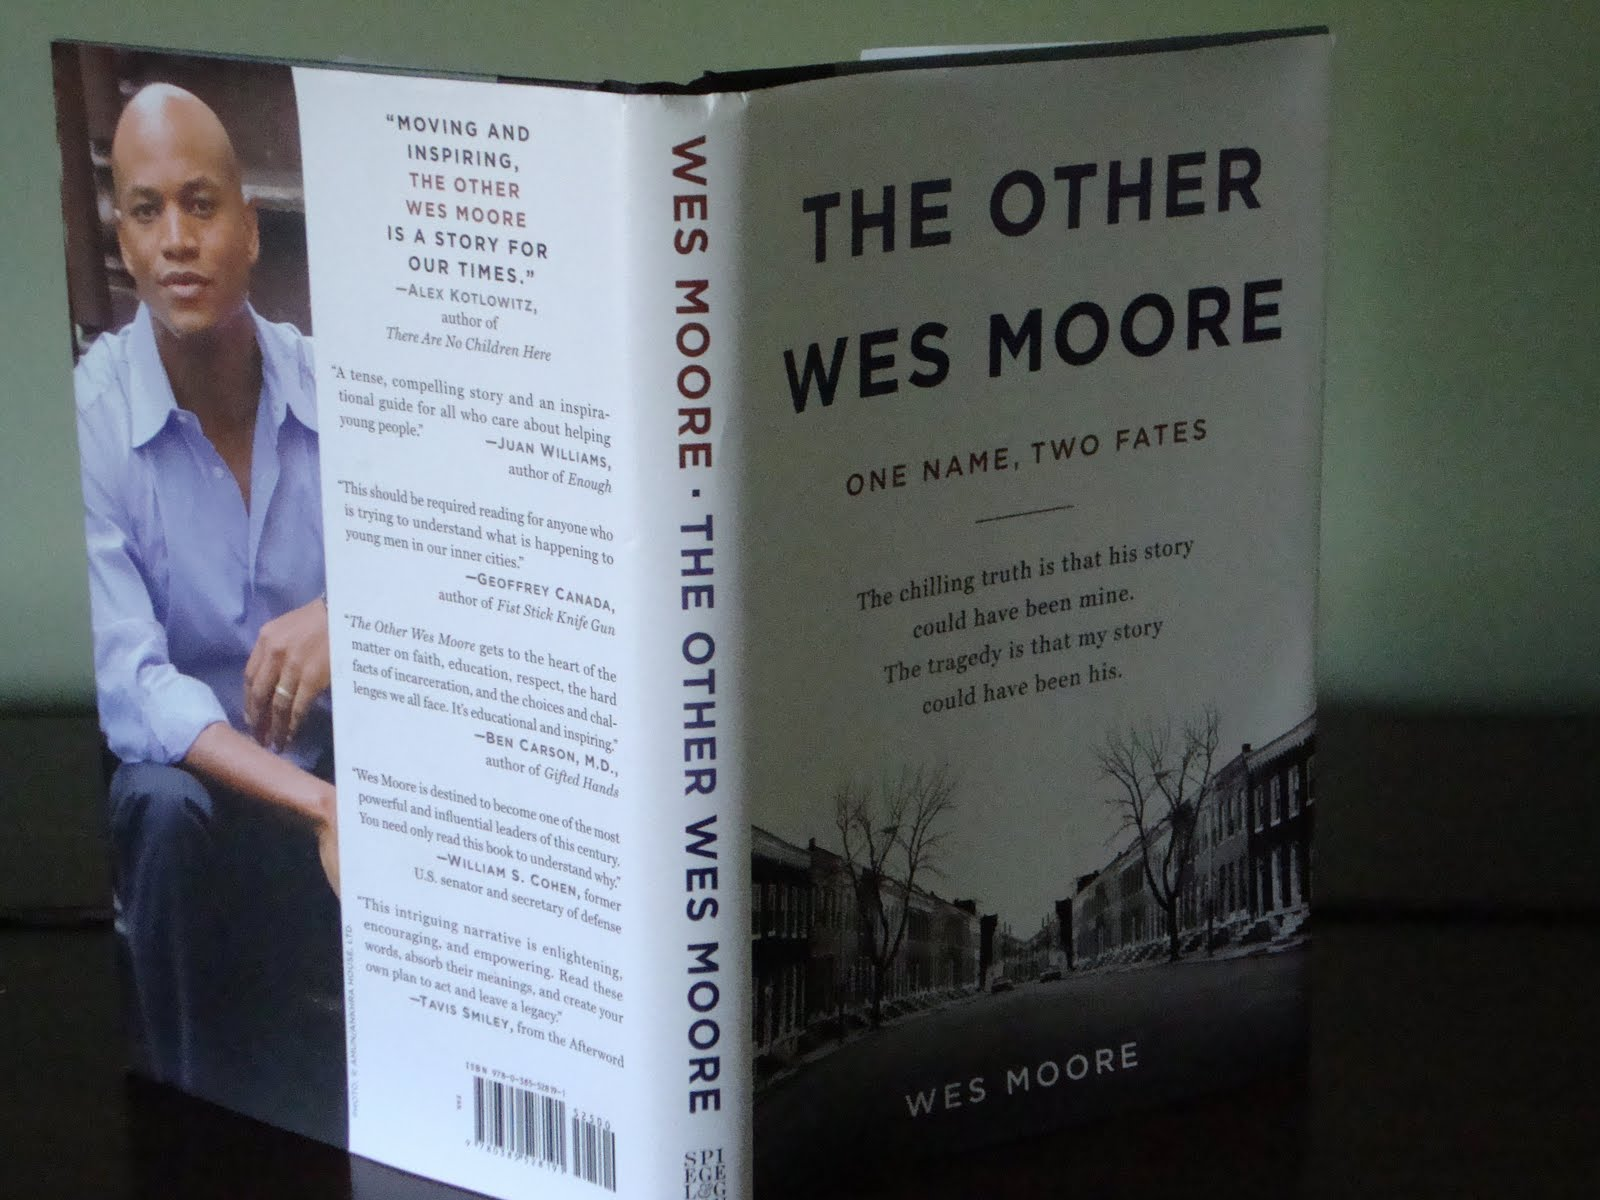 wes moore comparative essay essay The other wes moore by wes moore is the story of two black men who have a lot in common the same name, lived in the same city of baltimore, but whose lives took two completely different paths the author, who is wes moore, graduated from college, became a rhodes scholar and gave a speech at the 2008 democratic national convention which is a.